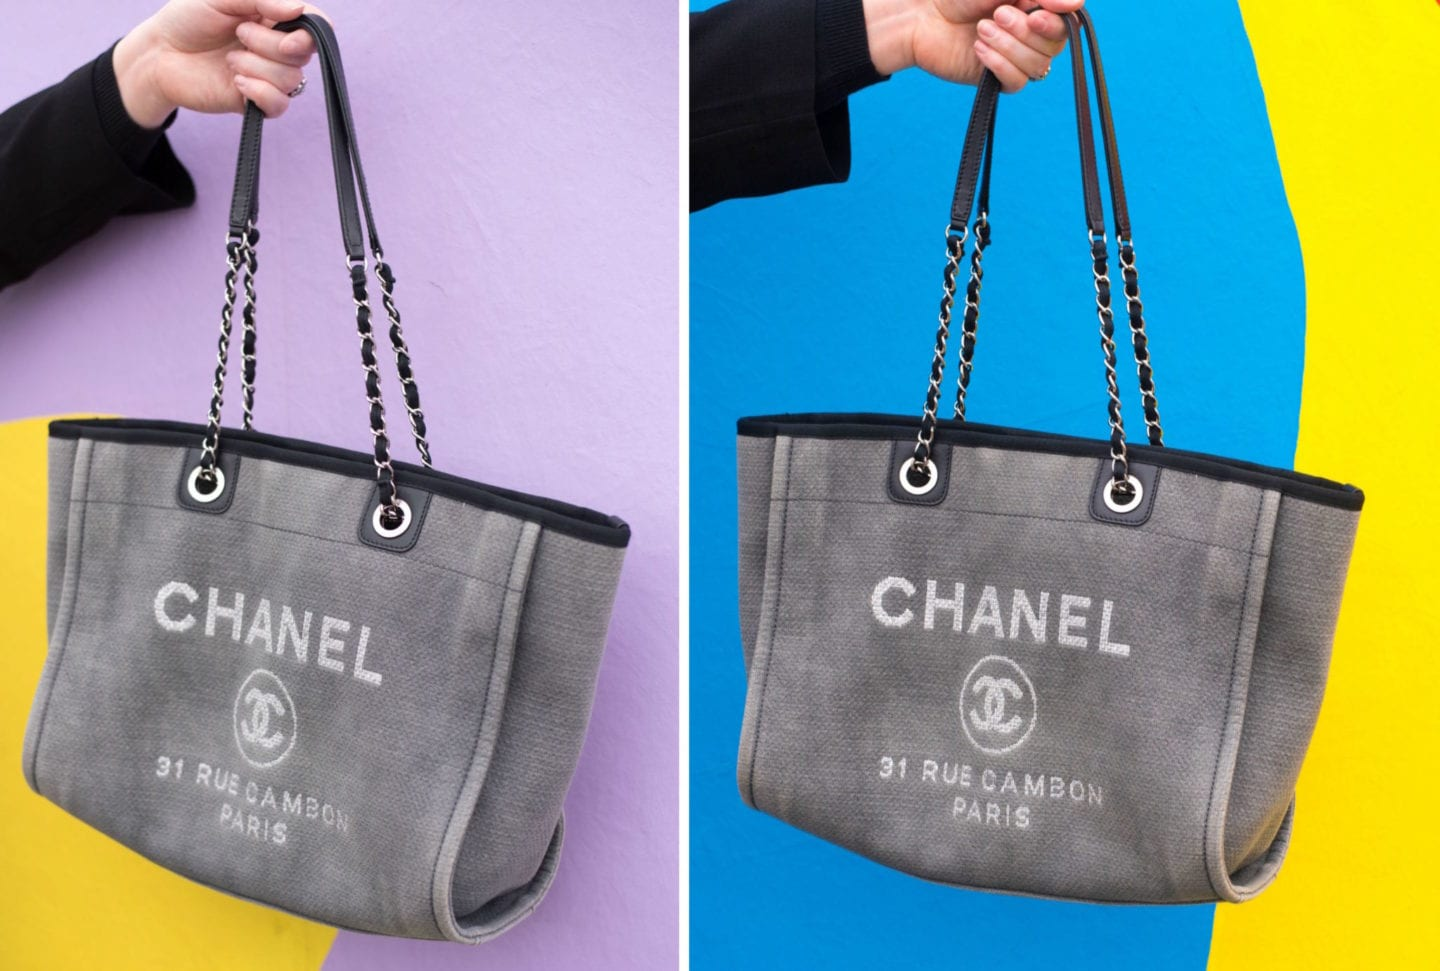 Chanel Deauville Tote Bag copy